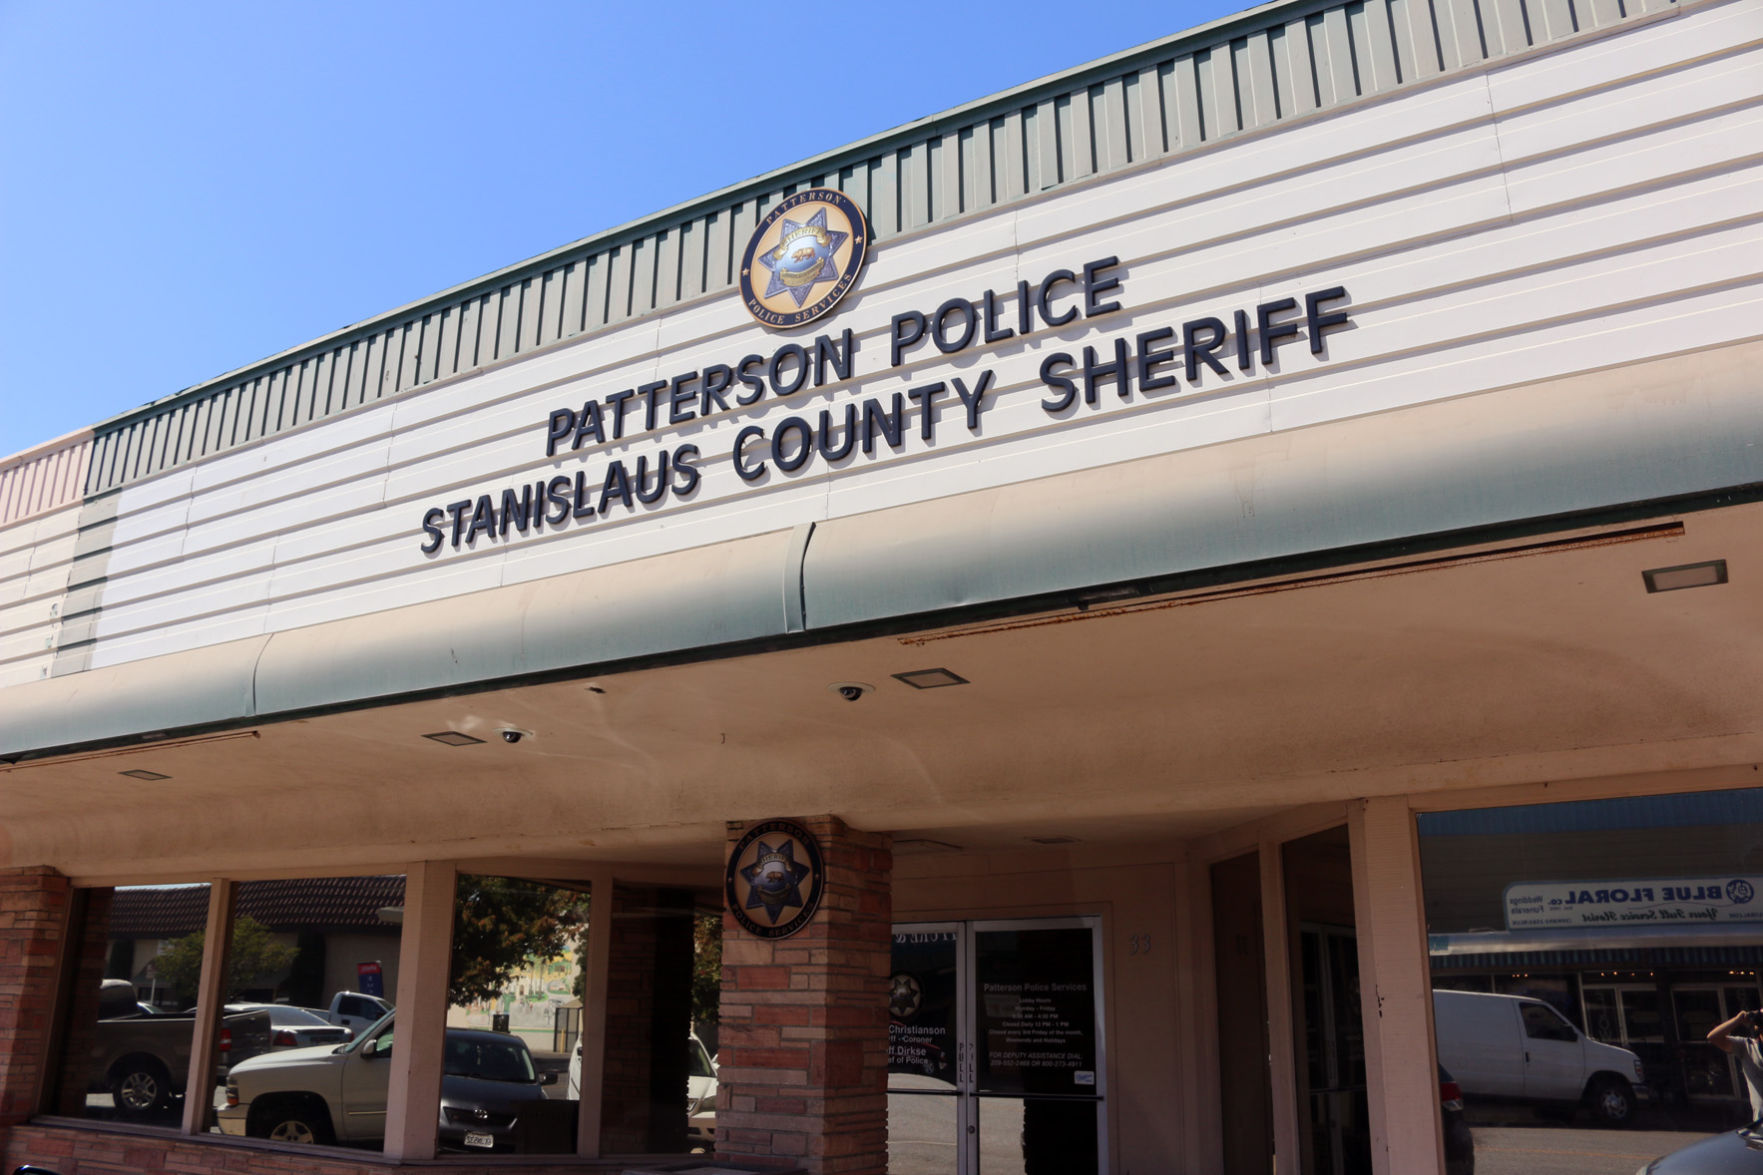 Patterson Police Services